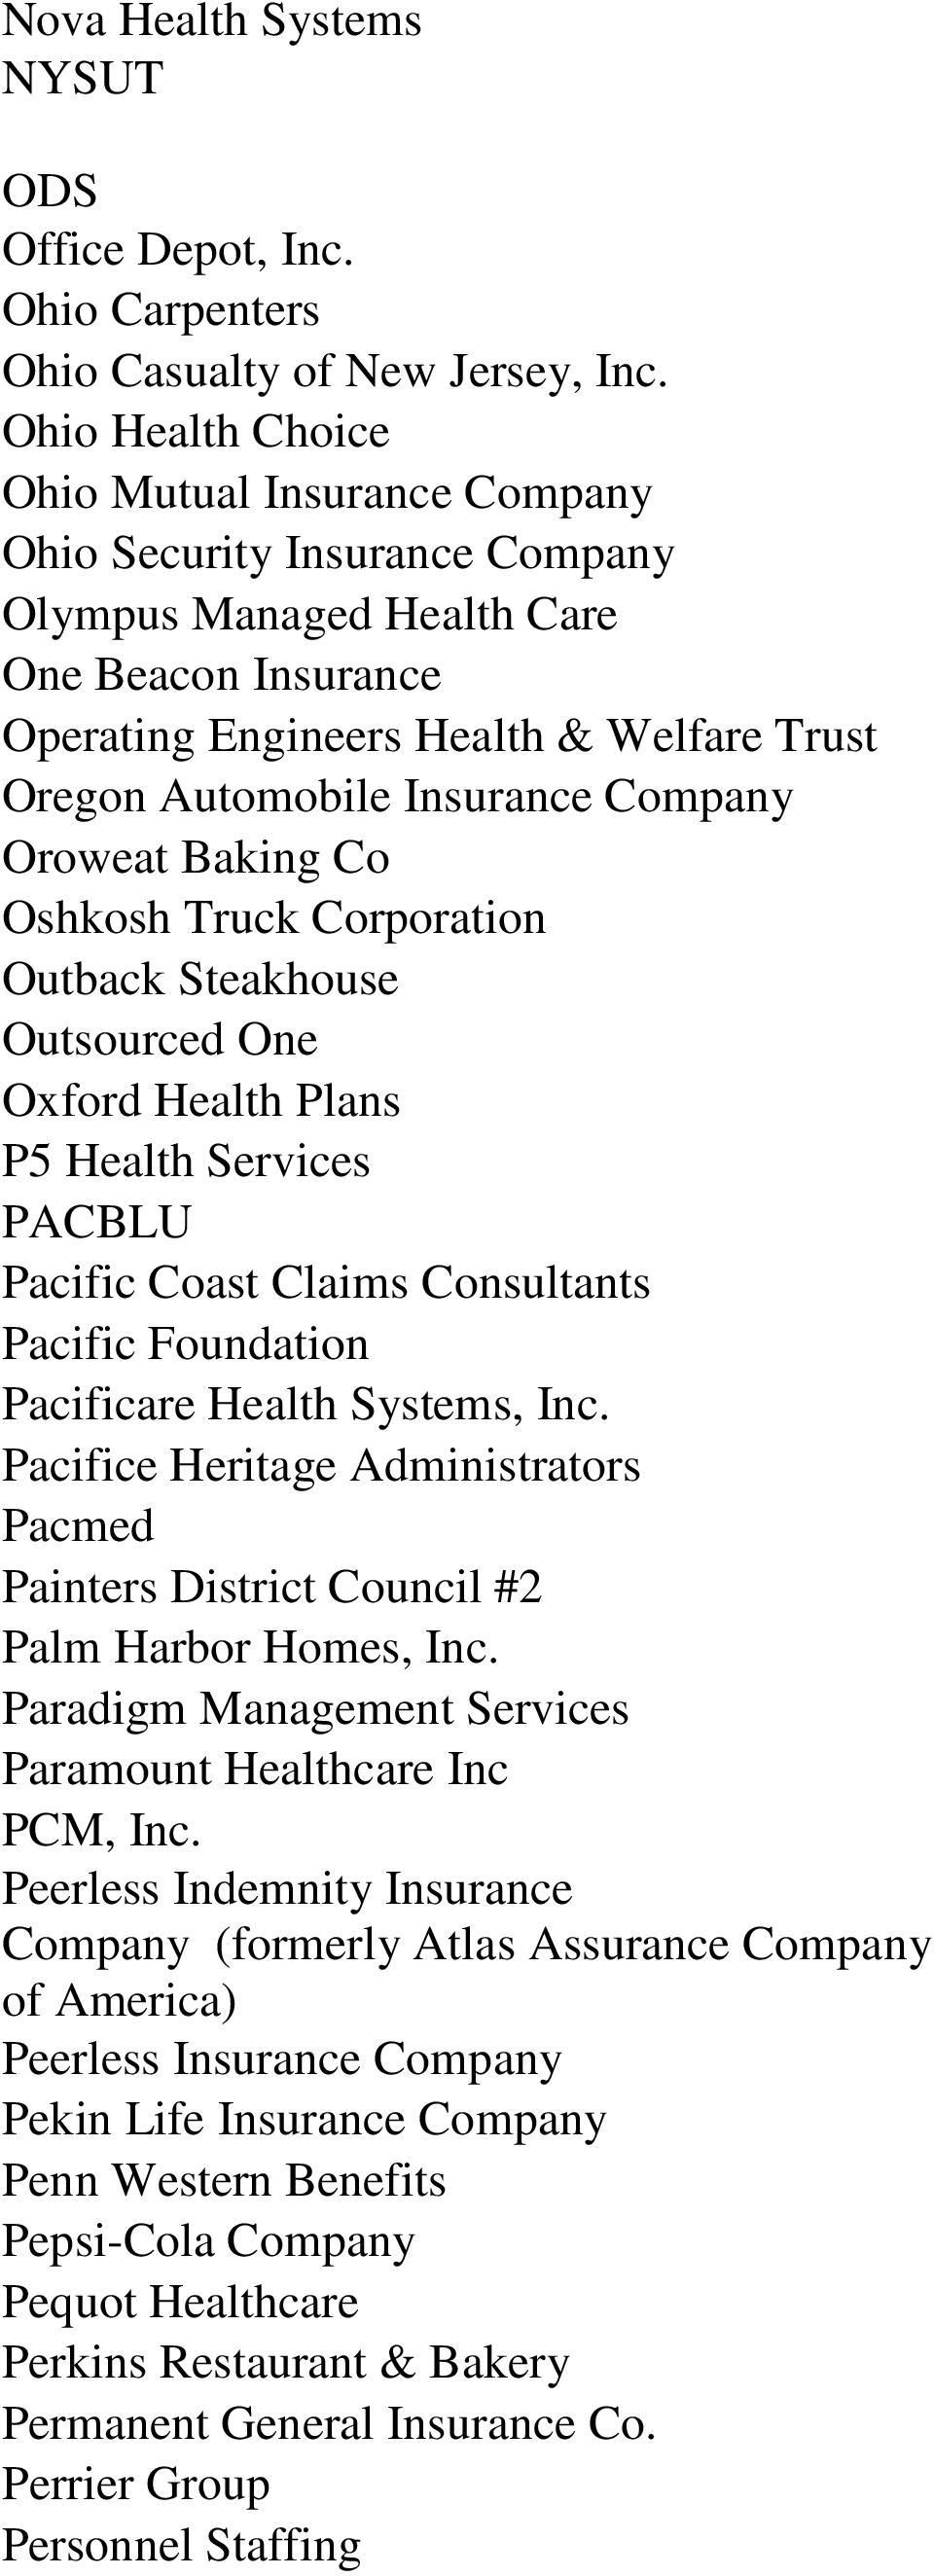 Three Rivers Provider Network National Client List - PDF